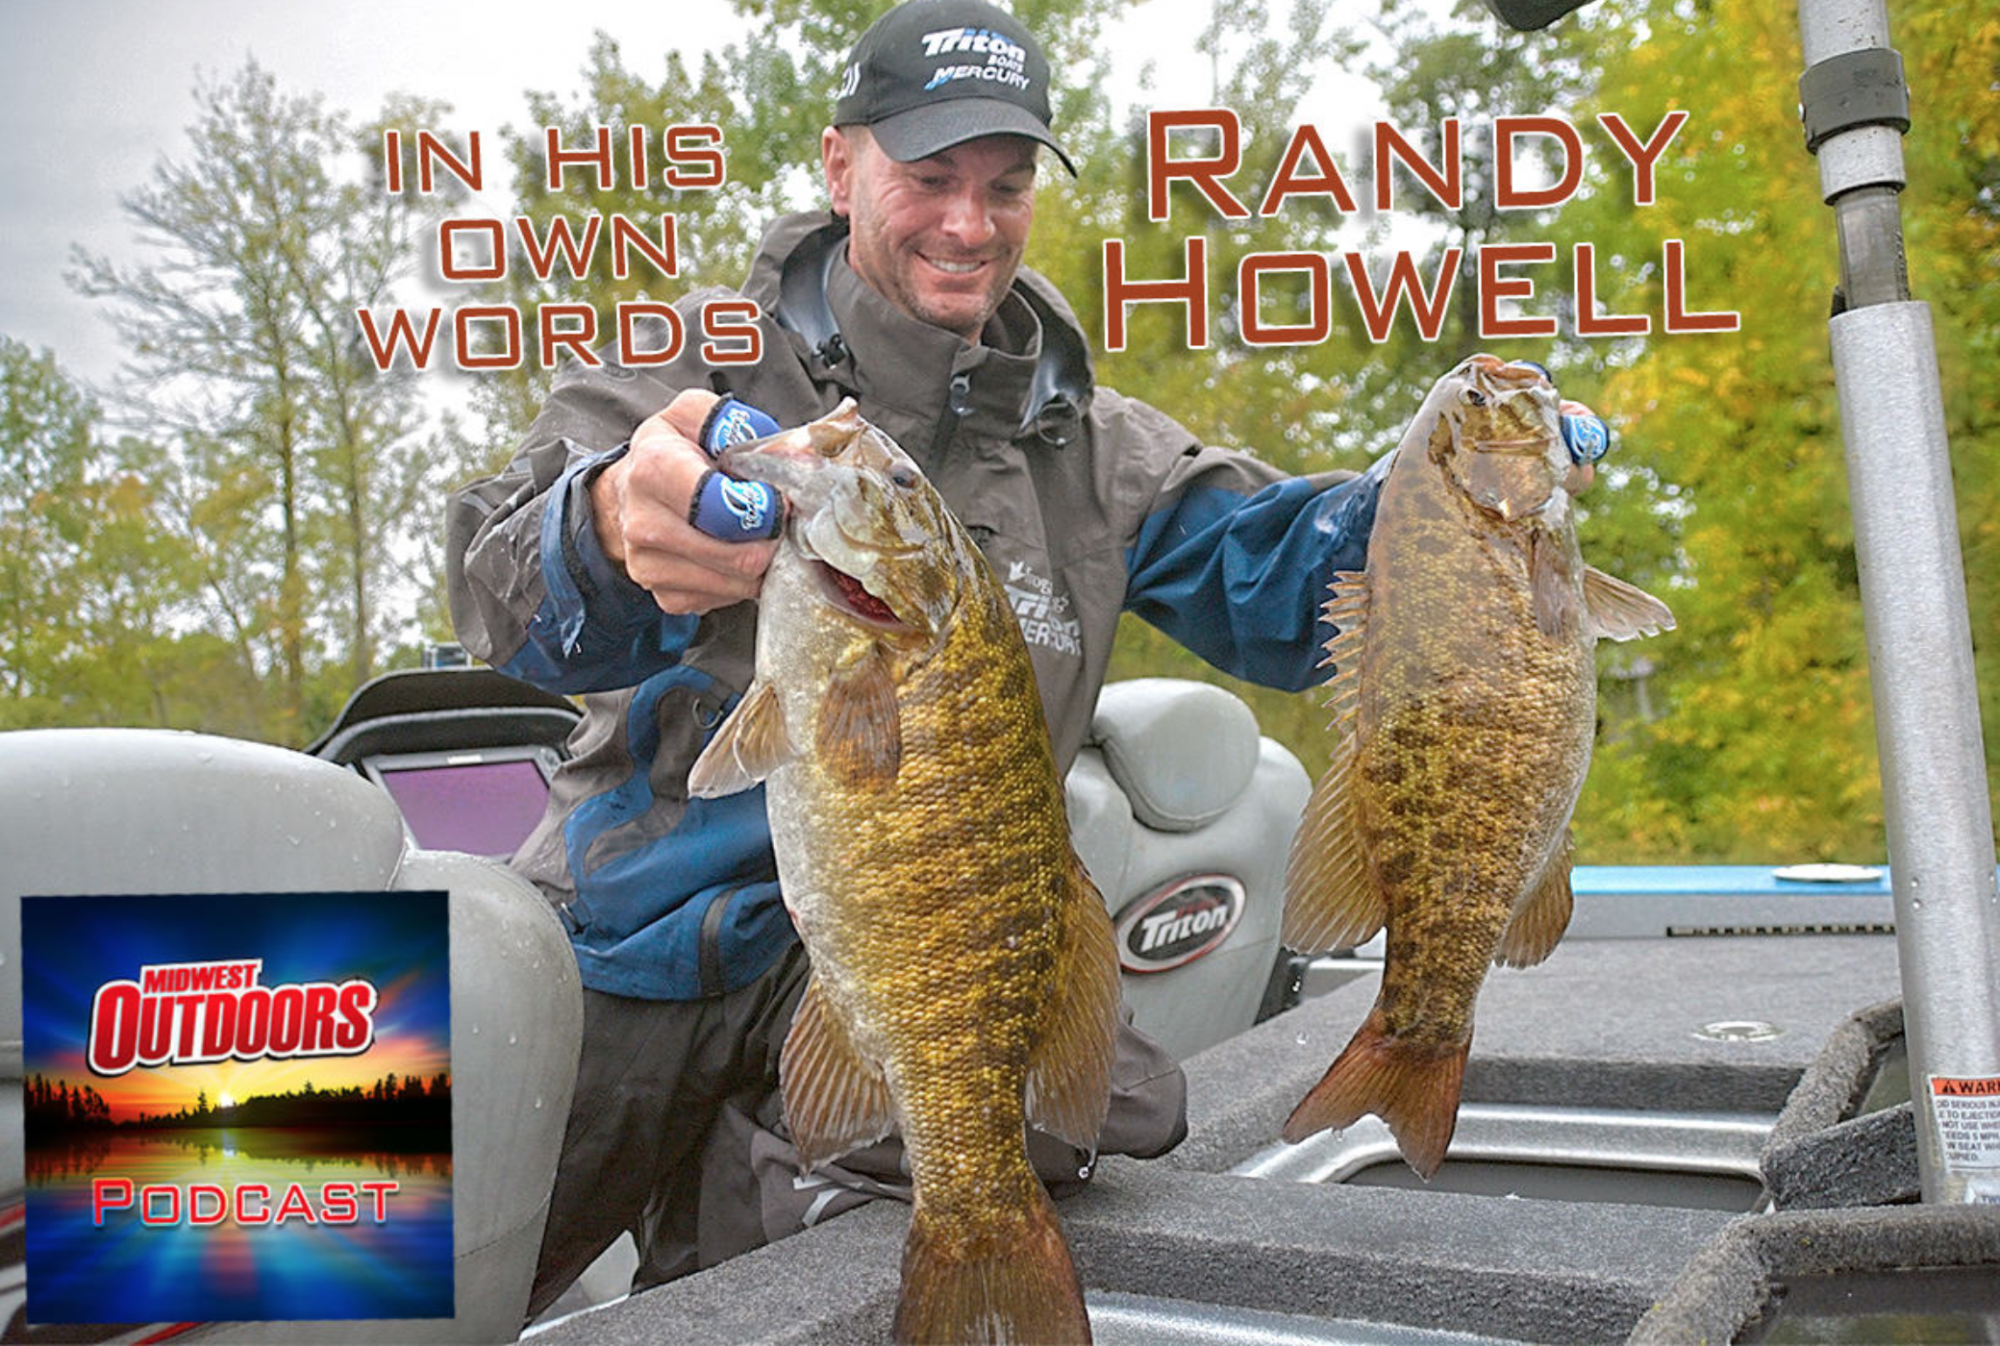 Randy Howell | Professional Bass Fishing | Bass Fishing Pro | Bass fishing podcast